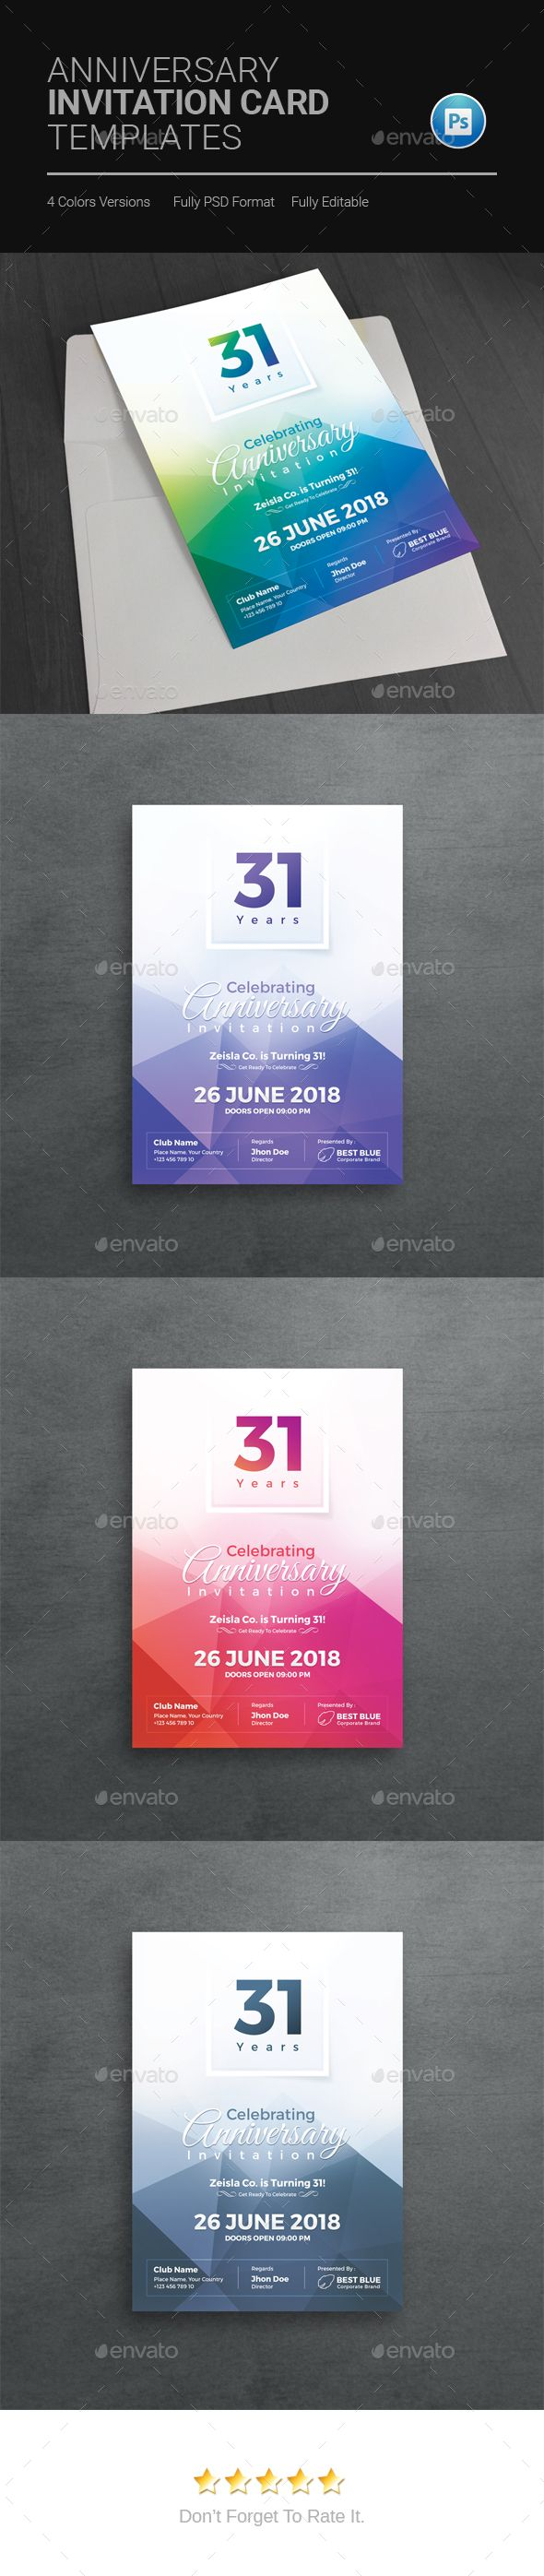 144 best invitation card templates images on pinterest card anniversary invitation template anniversary greeting cards design download stopboris Gallery